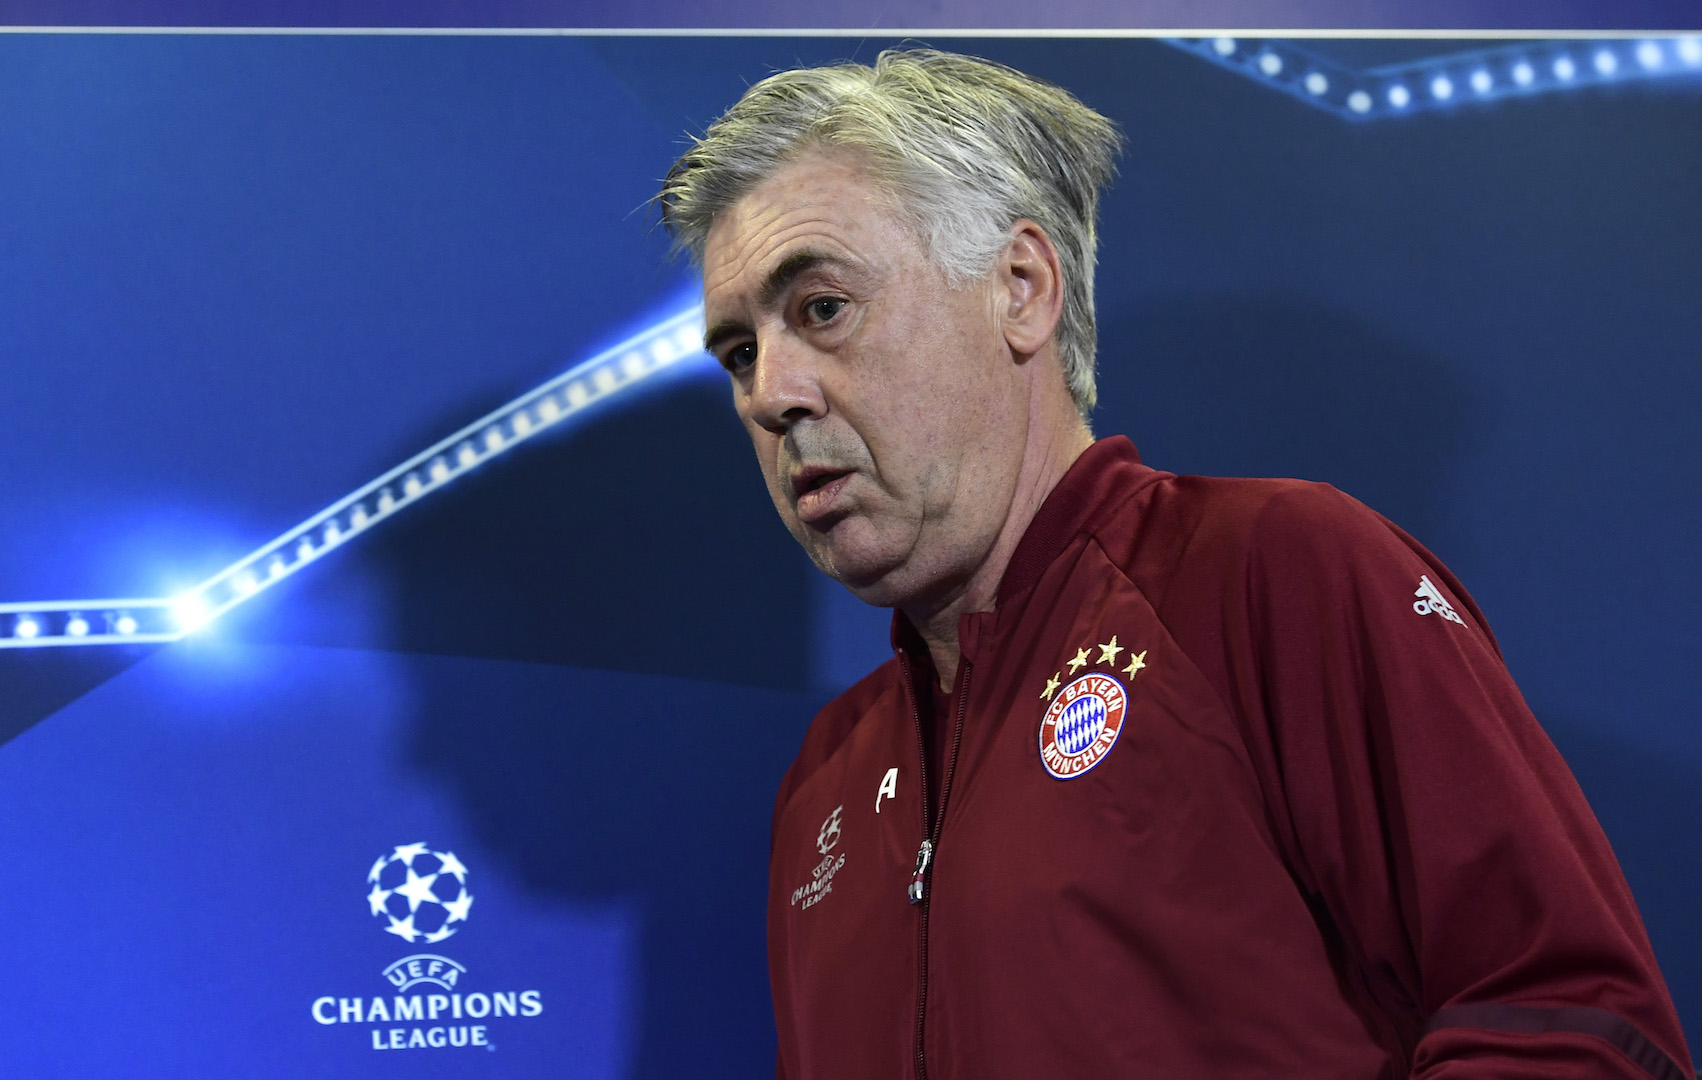 Bayern Munich's Italian head coach Carlo Ancelotti arrives for a press conference at the Vicente Calderon stadium in Madrid on September 27, 2016 on the eve of their UEFA Champions league match against Atletico de Madrid. / AFP / JAVIER SORIANO (Photo credit should read JAVIER SORIANO/AFP/Getty Images)